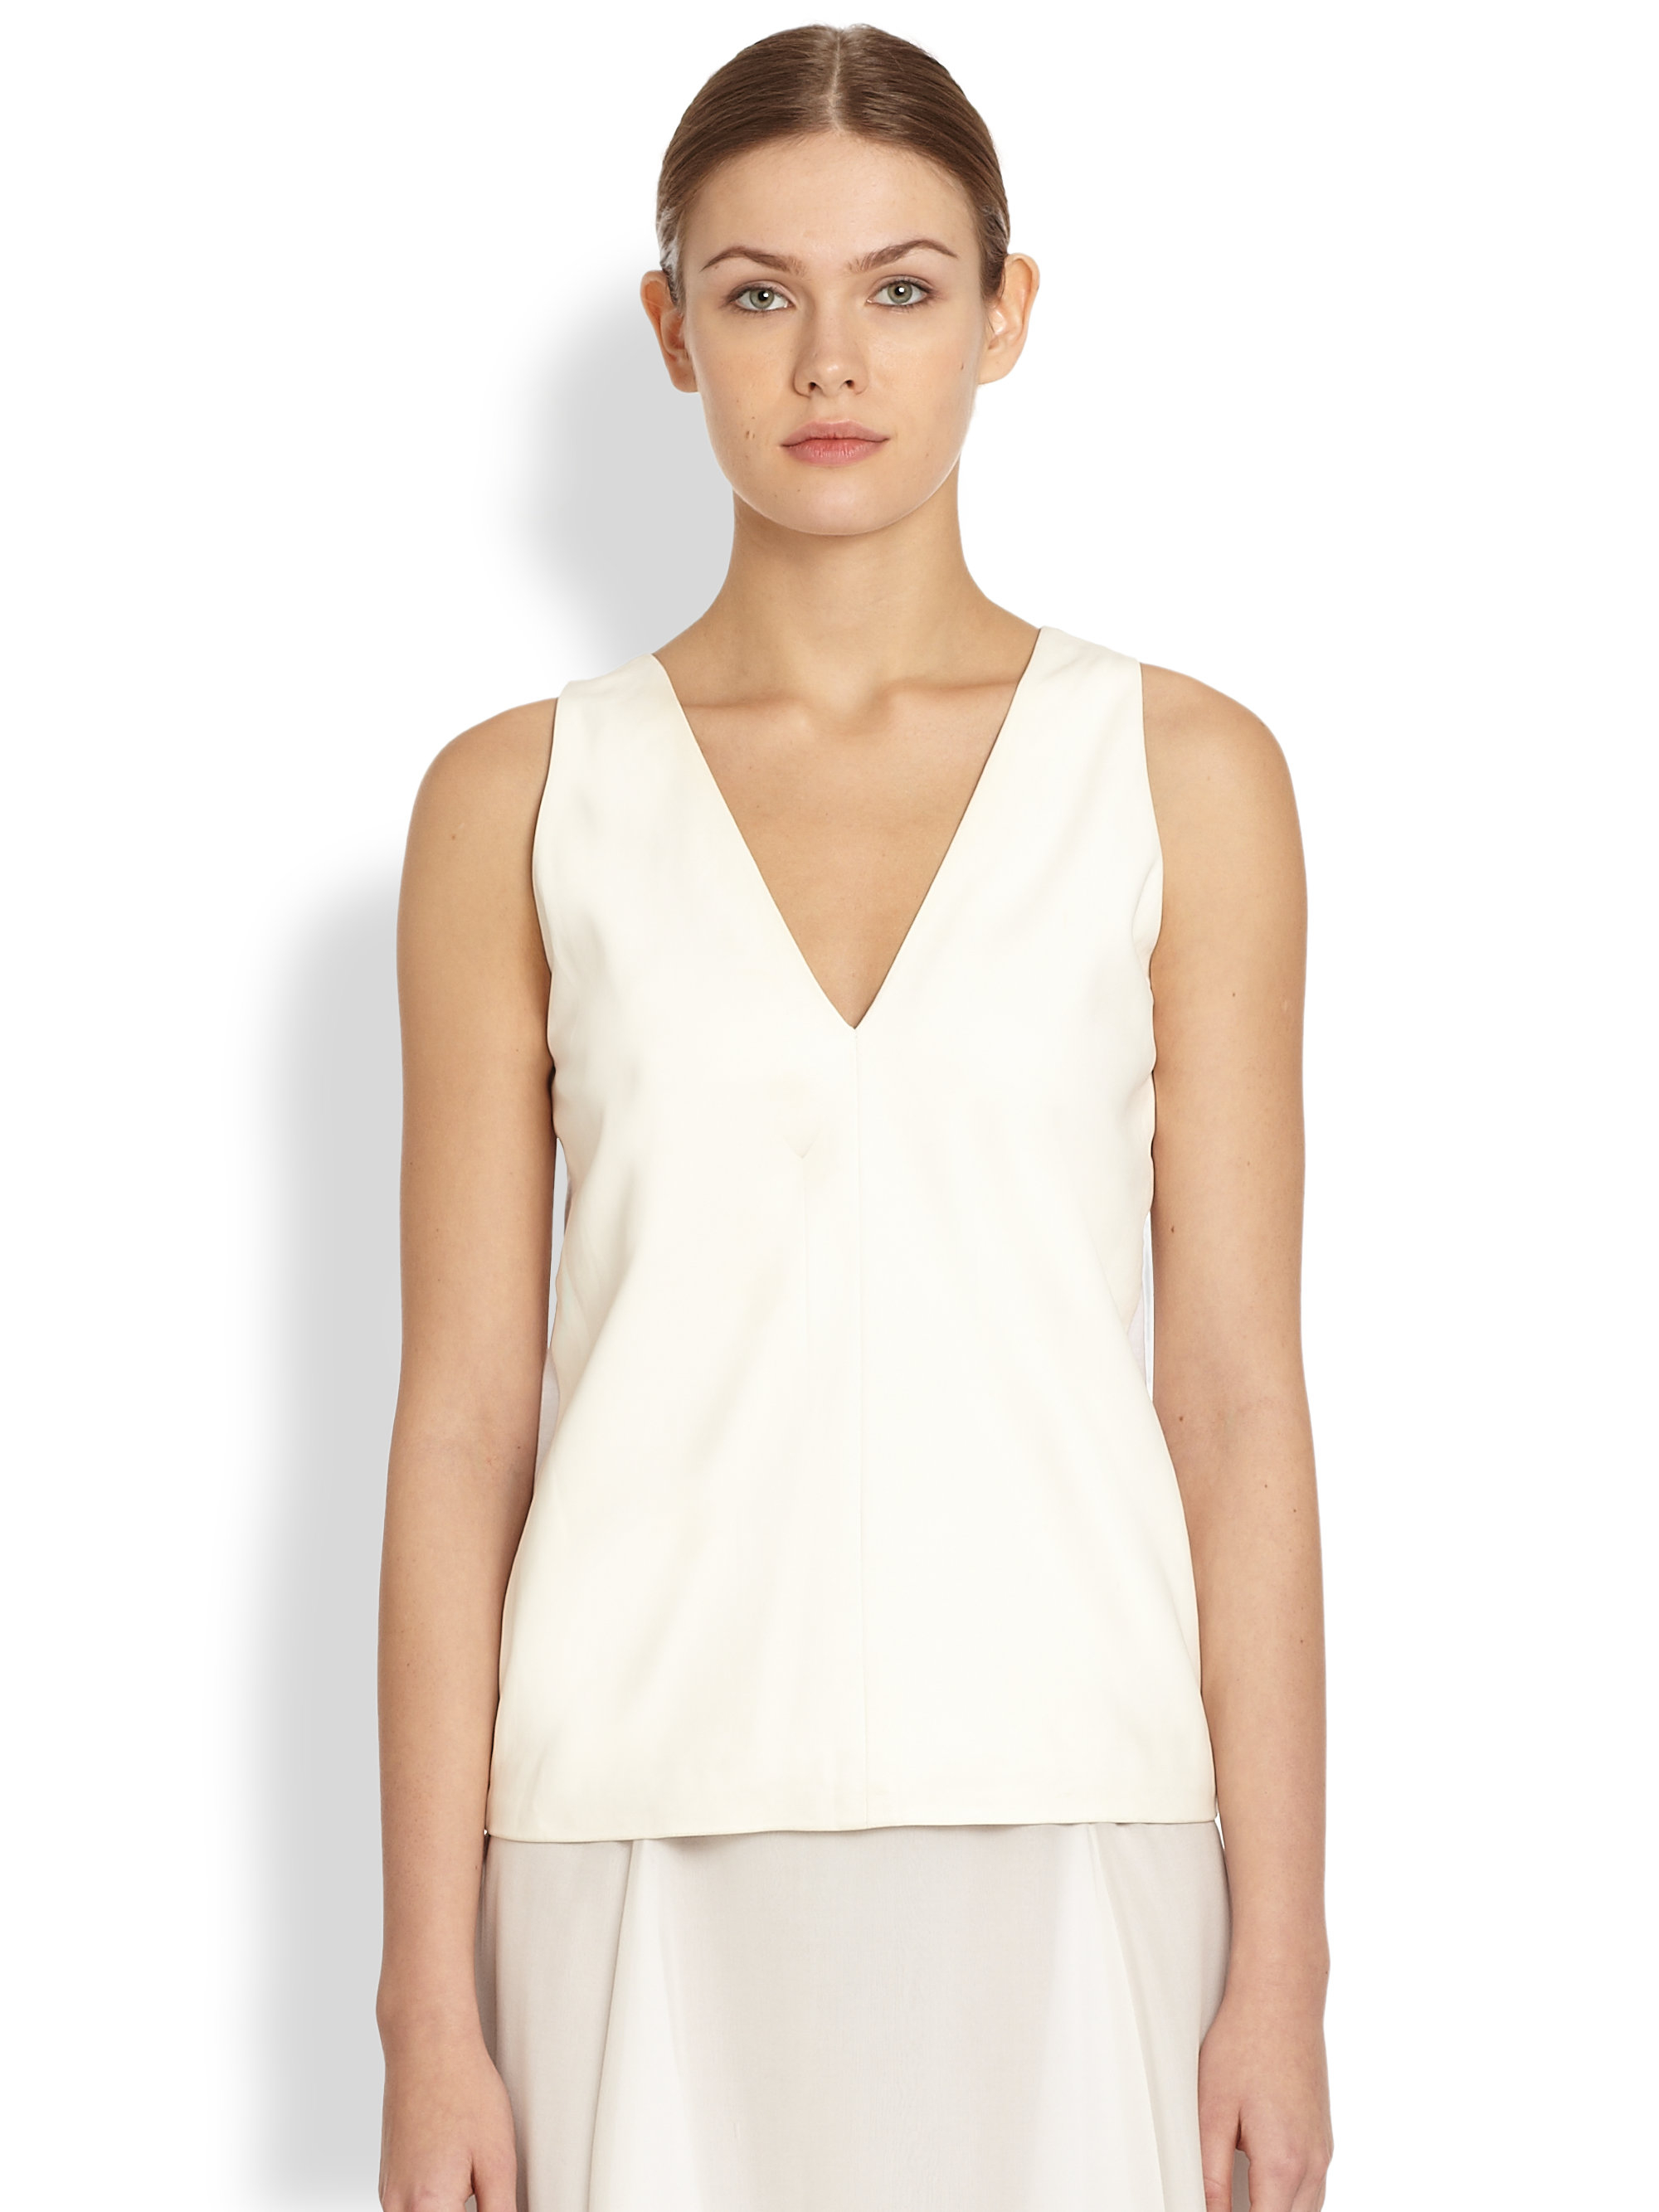 The cotton, polyester, and rayon-blend features a heart-shaped V-neck neckline and a left pocket. But don't worry about those irritating construction tags; this style is tag-free. Buy in bulk.